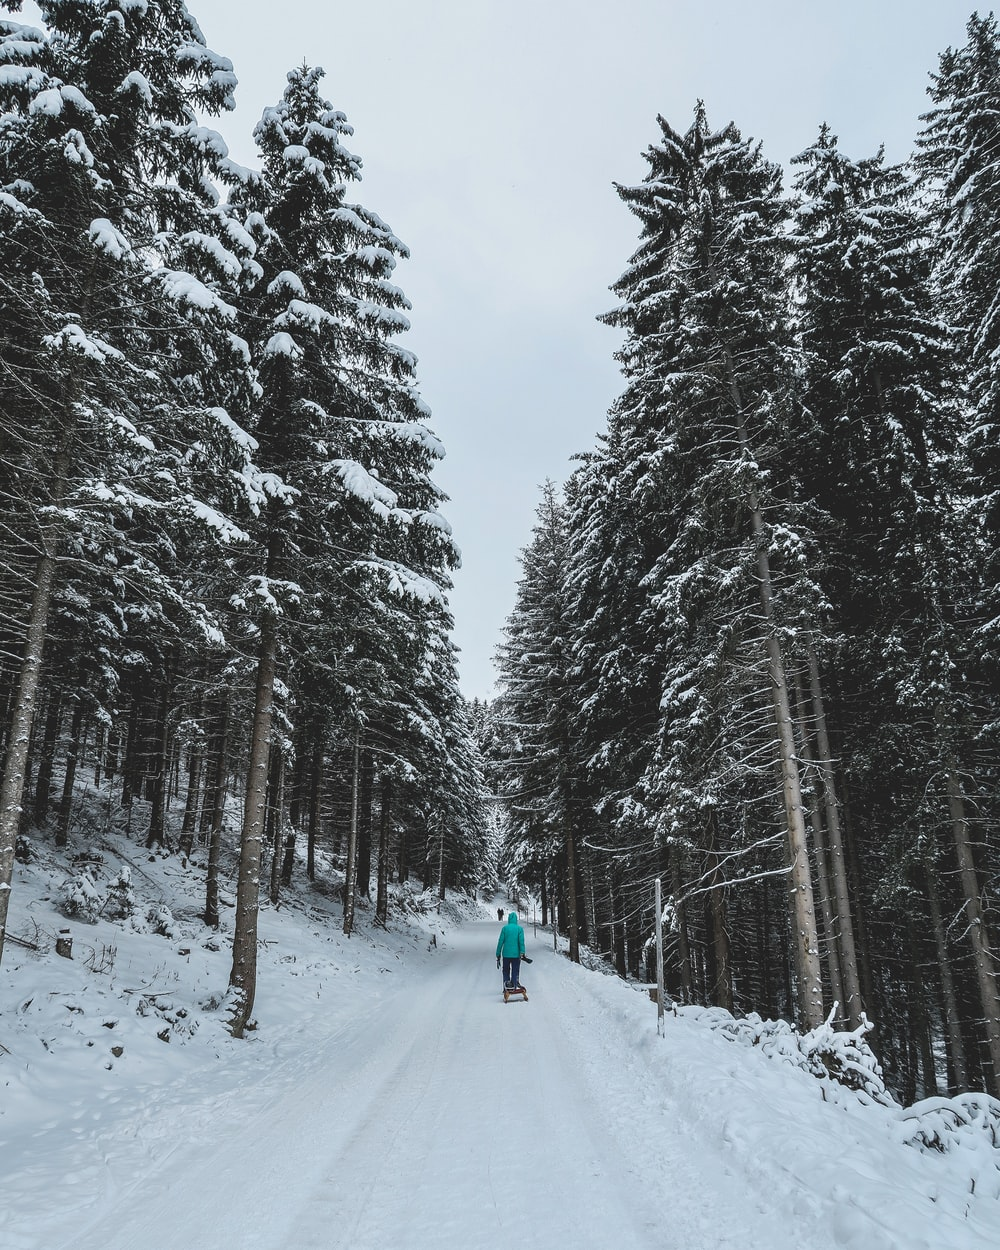 person walking on snowy forest trail